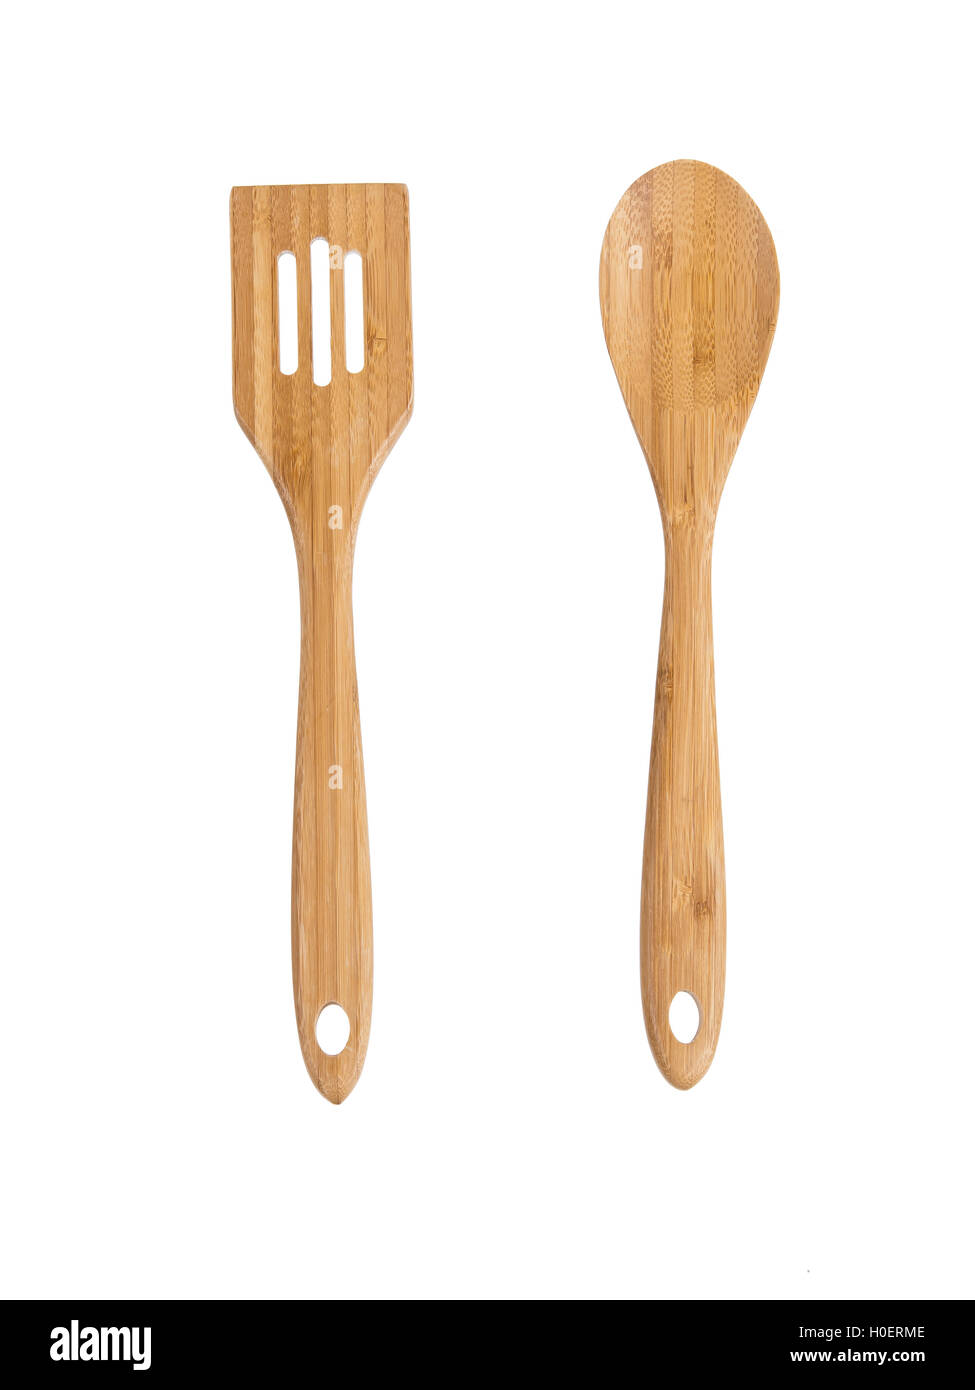 Isolated Wooden Kitchen Utensils - Stock Image